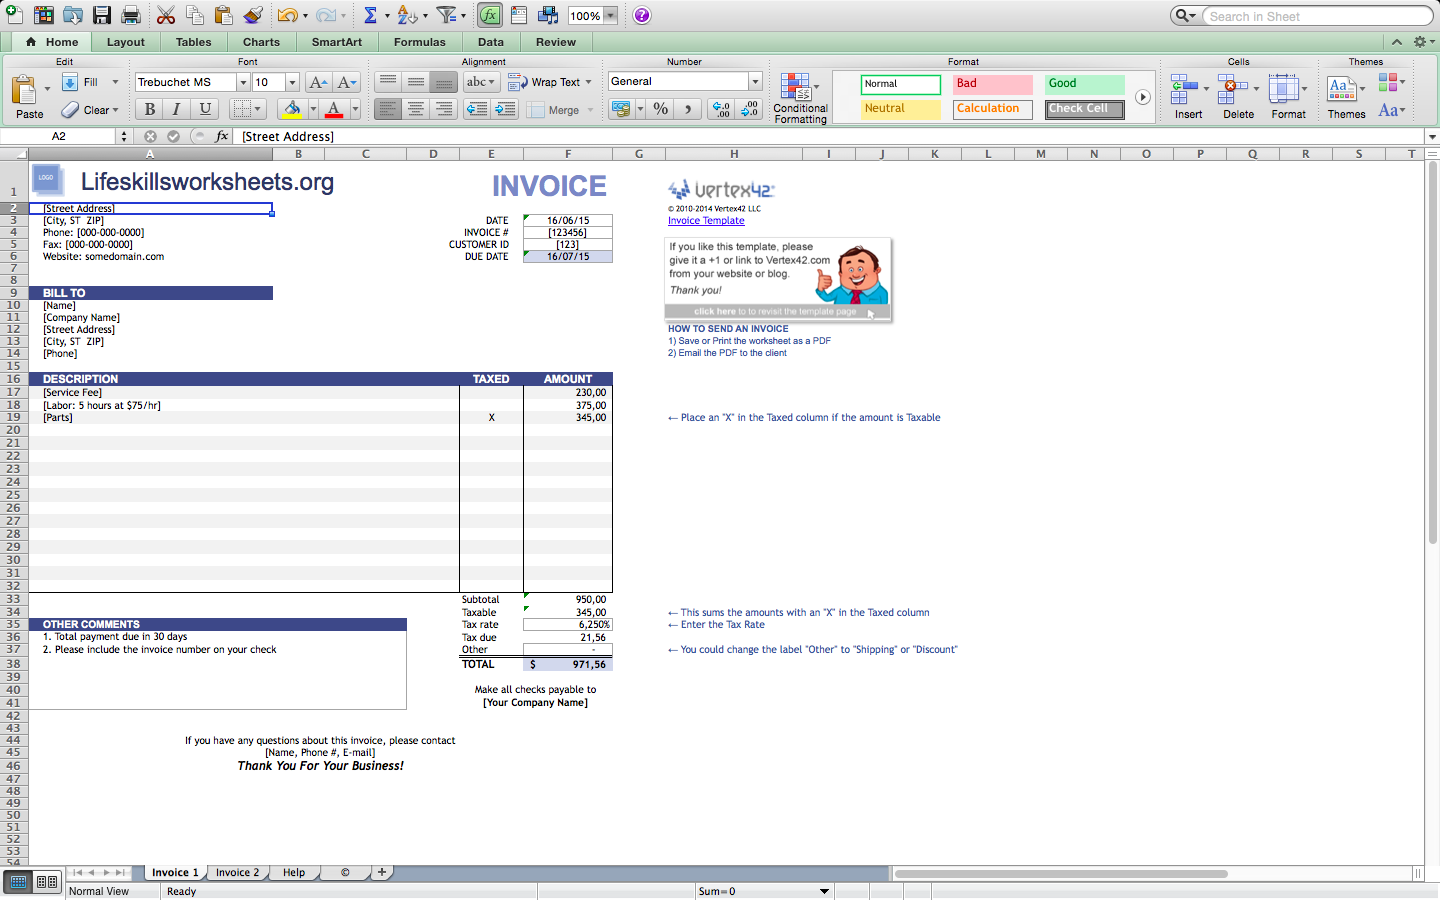 Free invoice templates for excel, mac | BlankInvoice.org